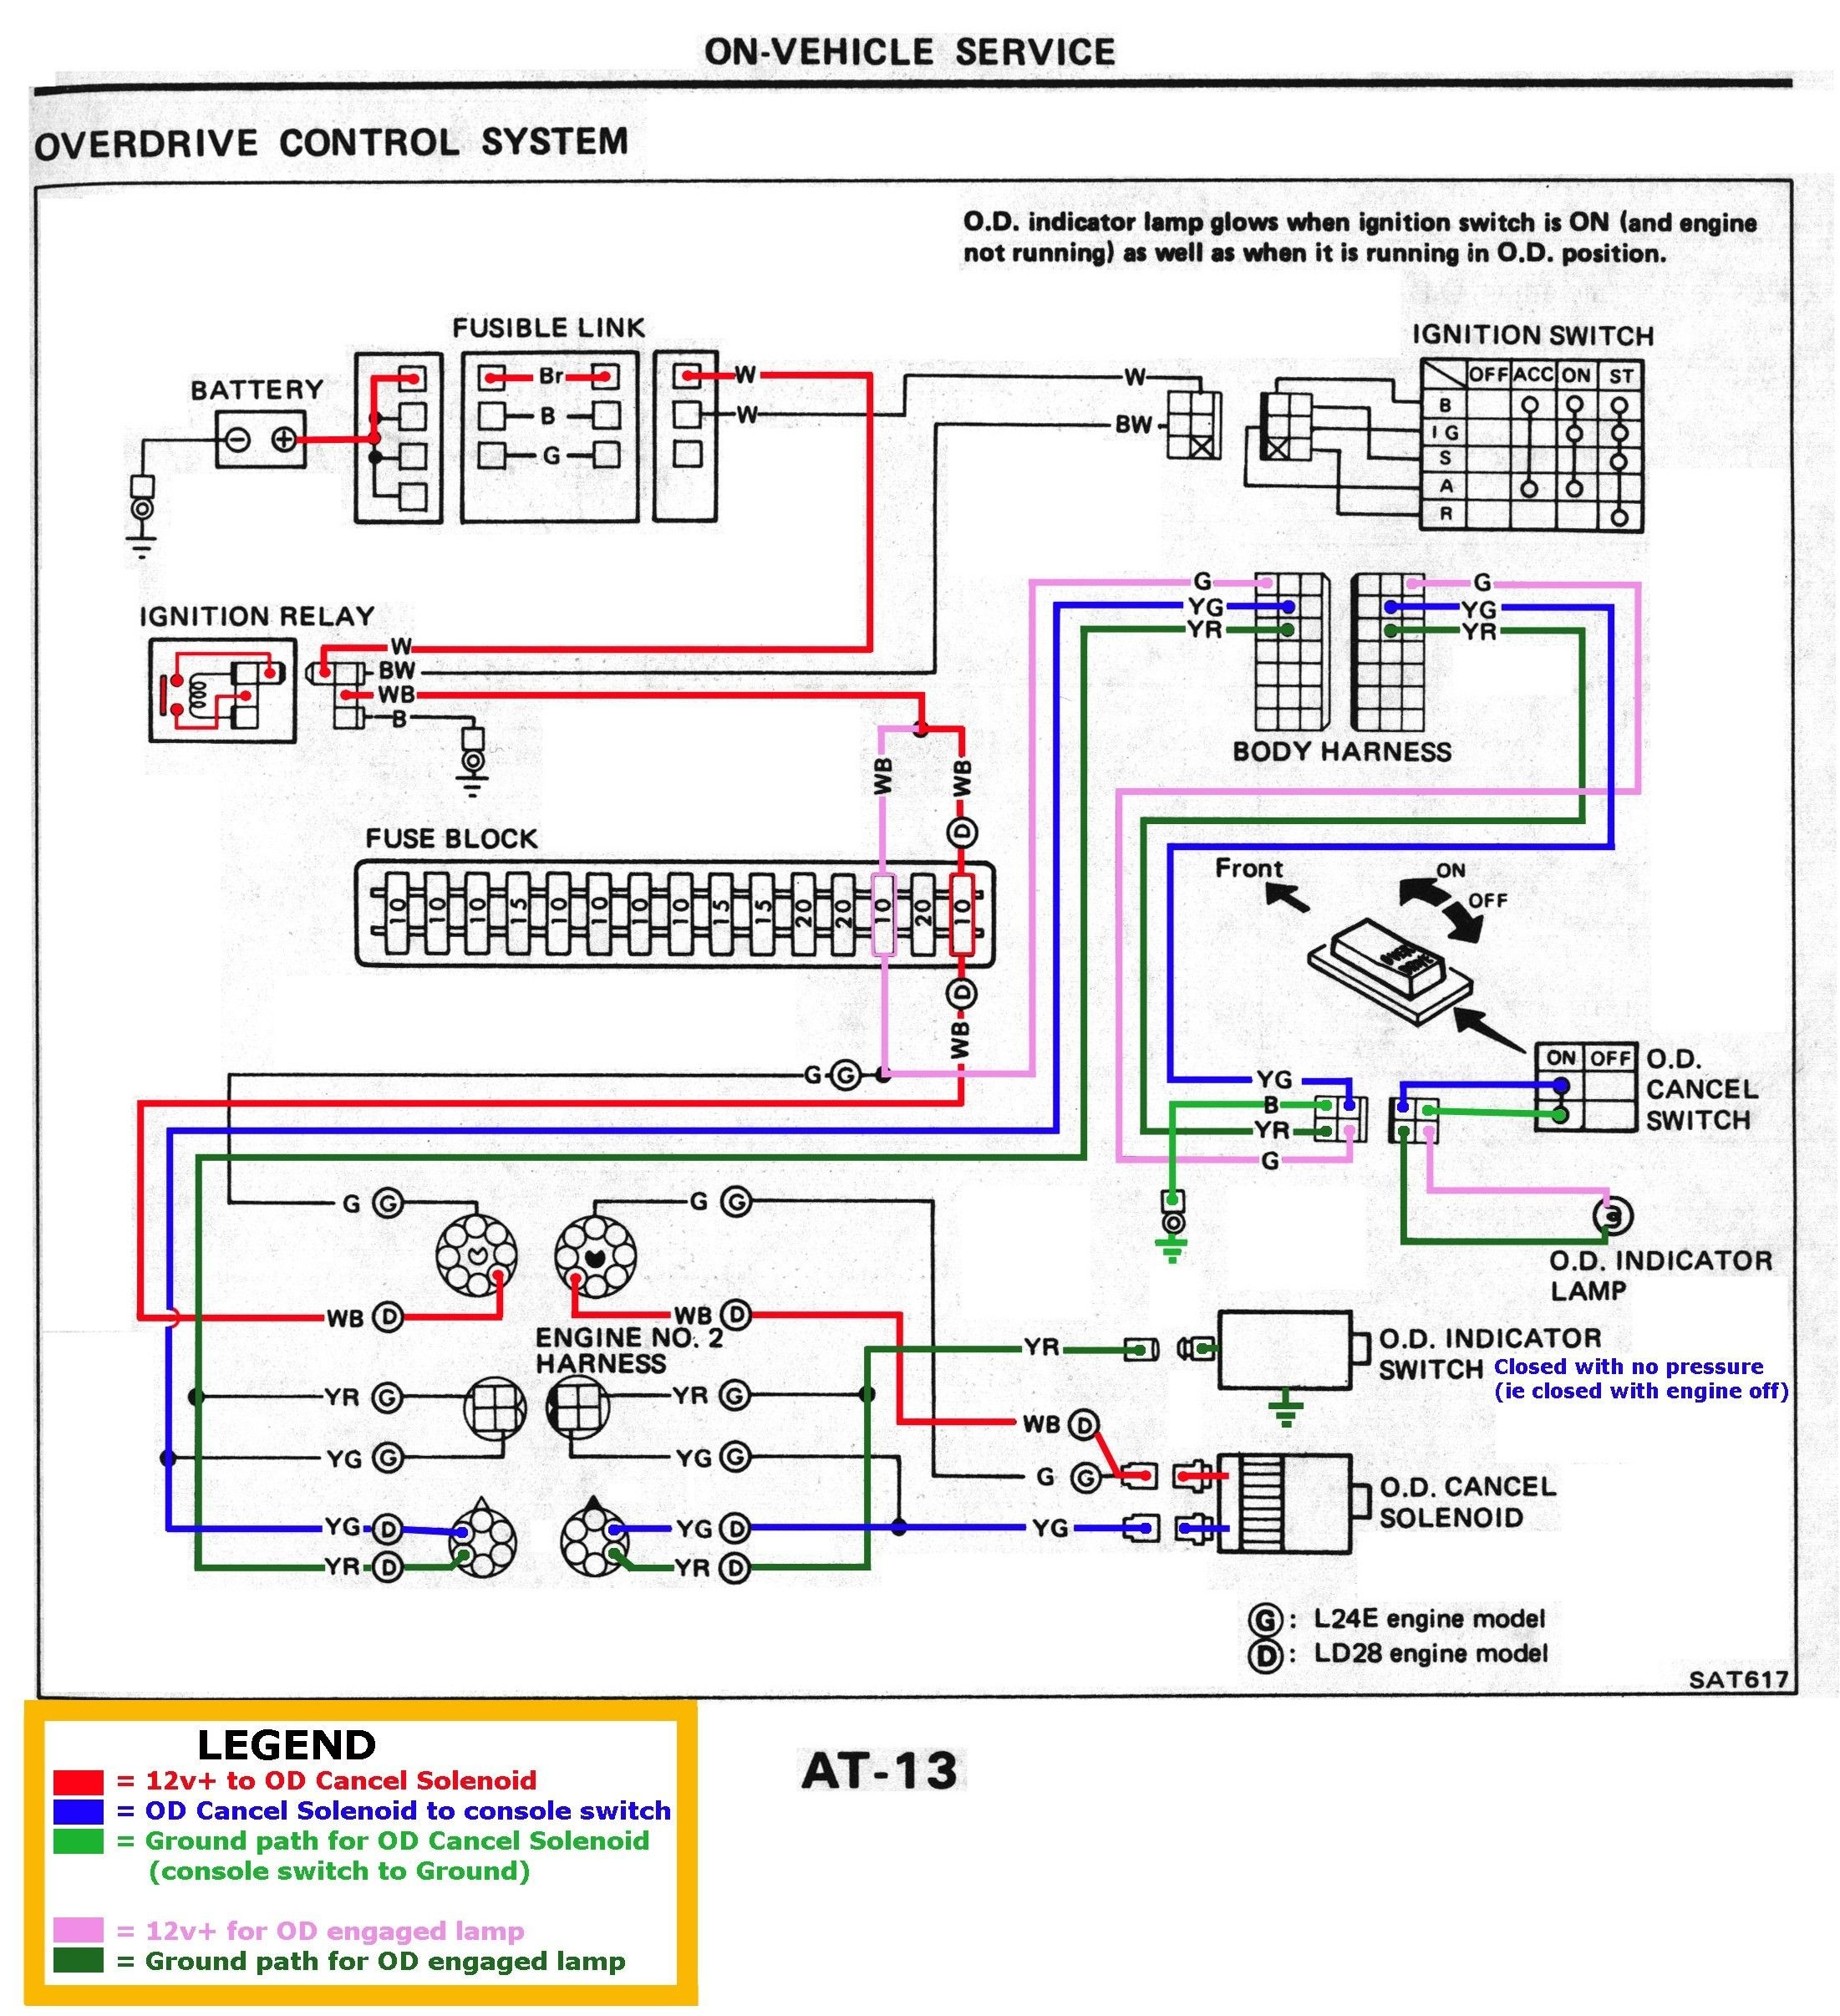 White Rodgers Gas Valve Wiring Diagram in 2020 | Electrical wiring diagram,  Trailer wiring diagram, House wiring | White Rodgers Gas Valve Wiring Diagram |  | Pinterest